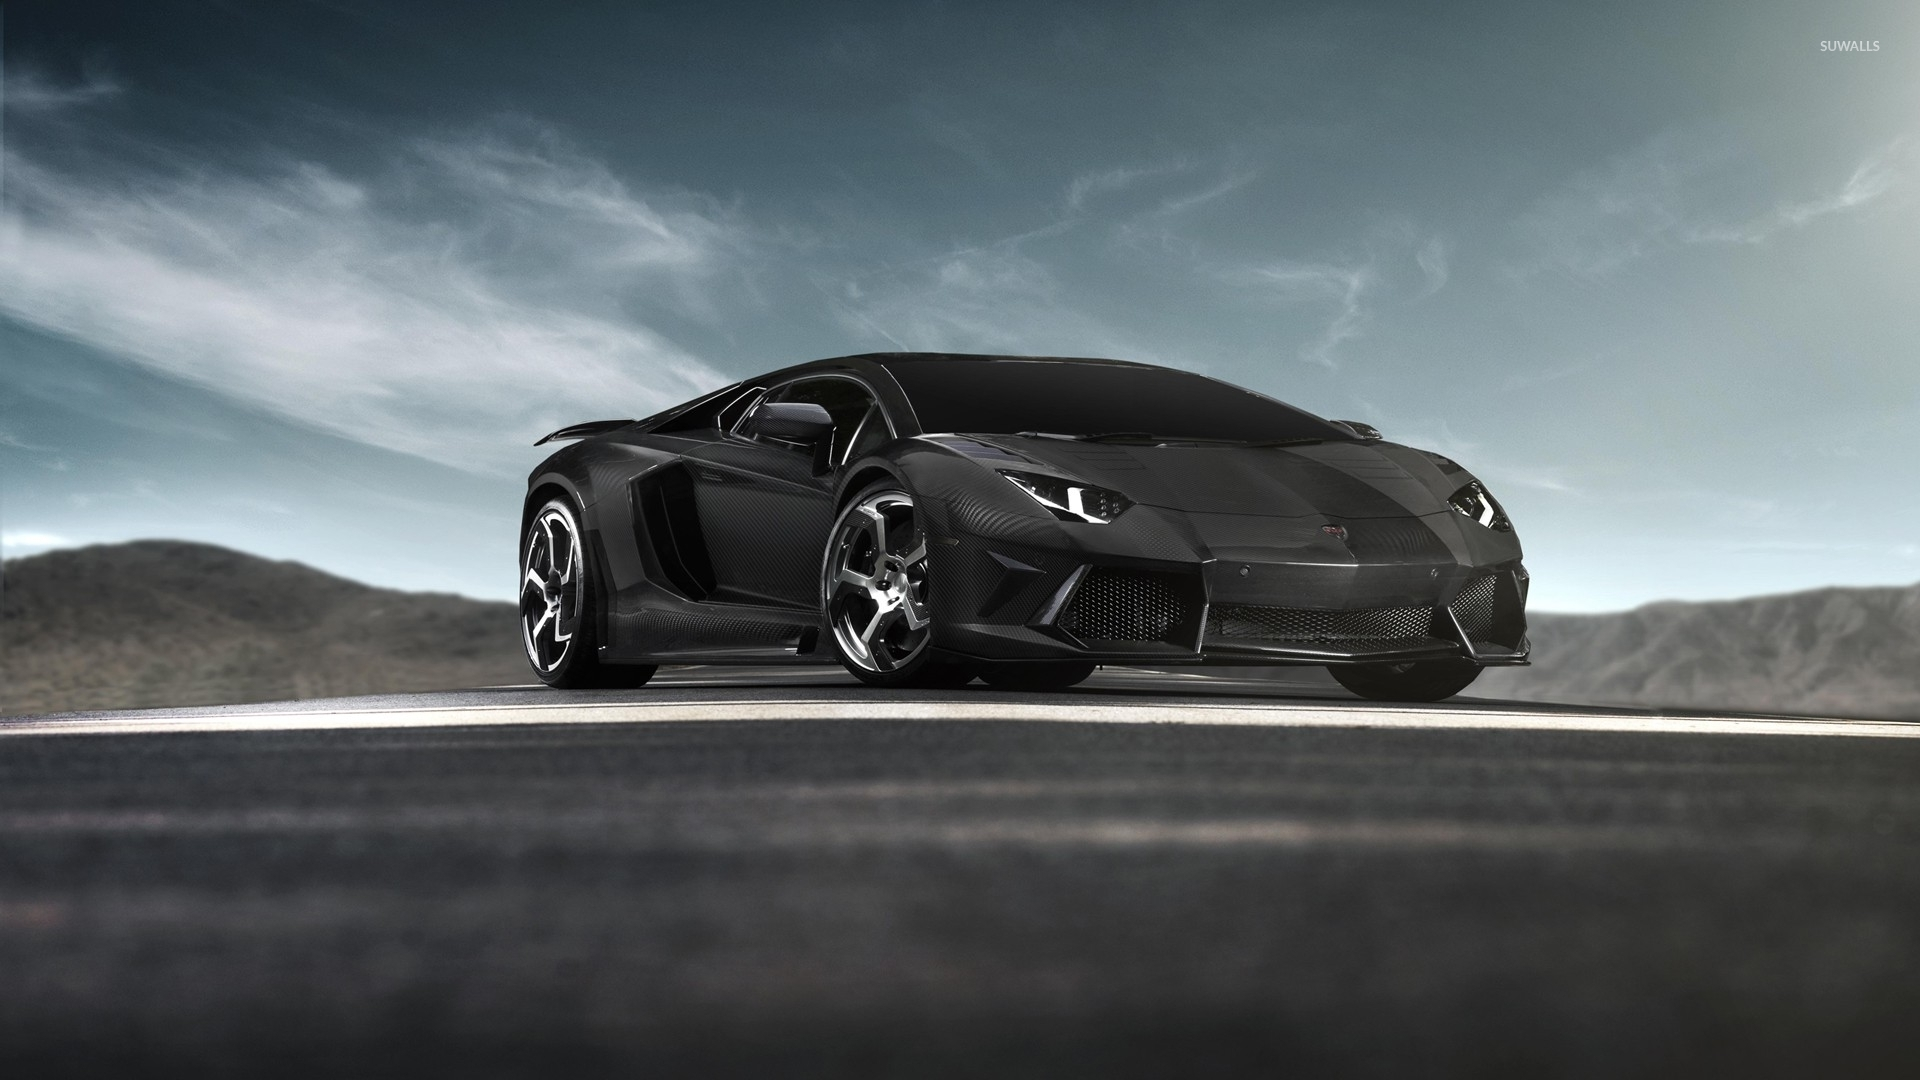 Black Lamborghini Aventador Front Side View Wallpaper Car